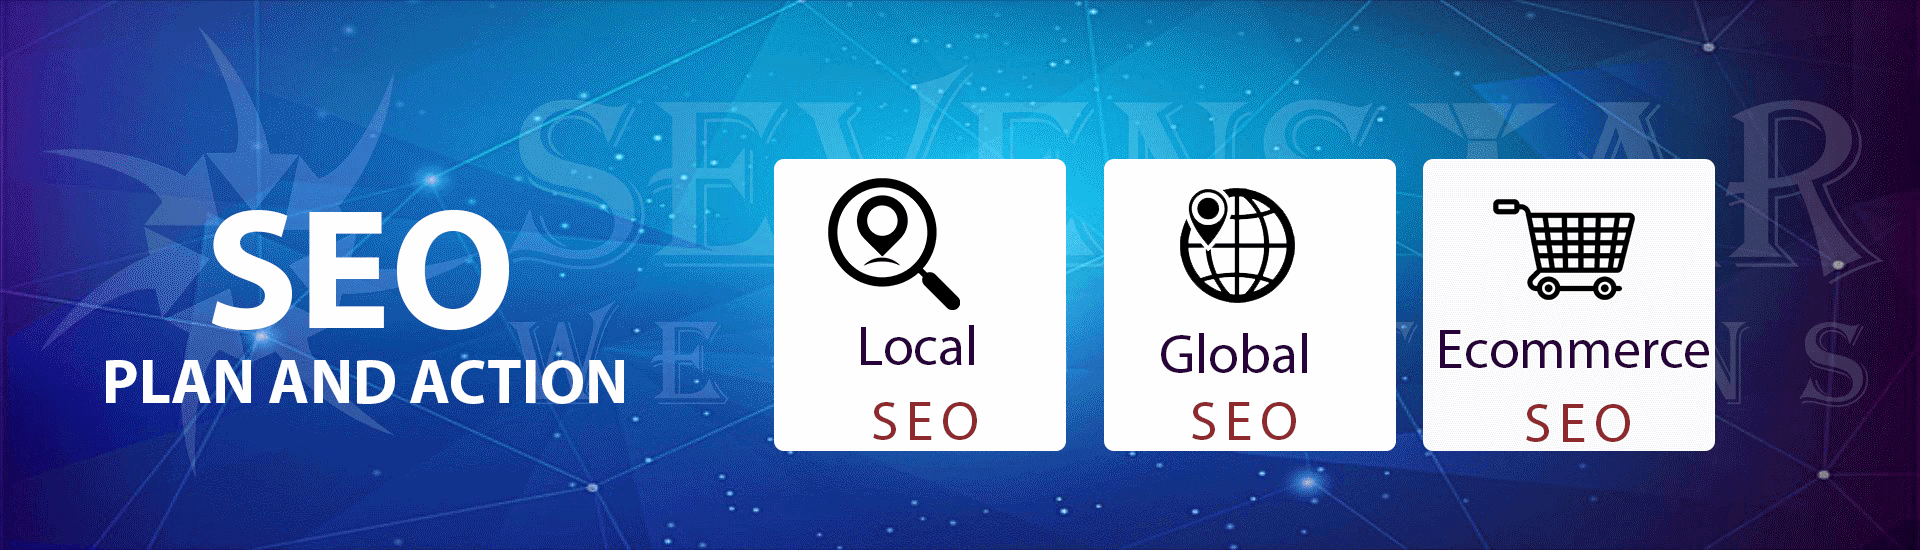 SEO Local, Global and E commerce Package & Plan | STWS